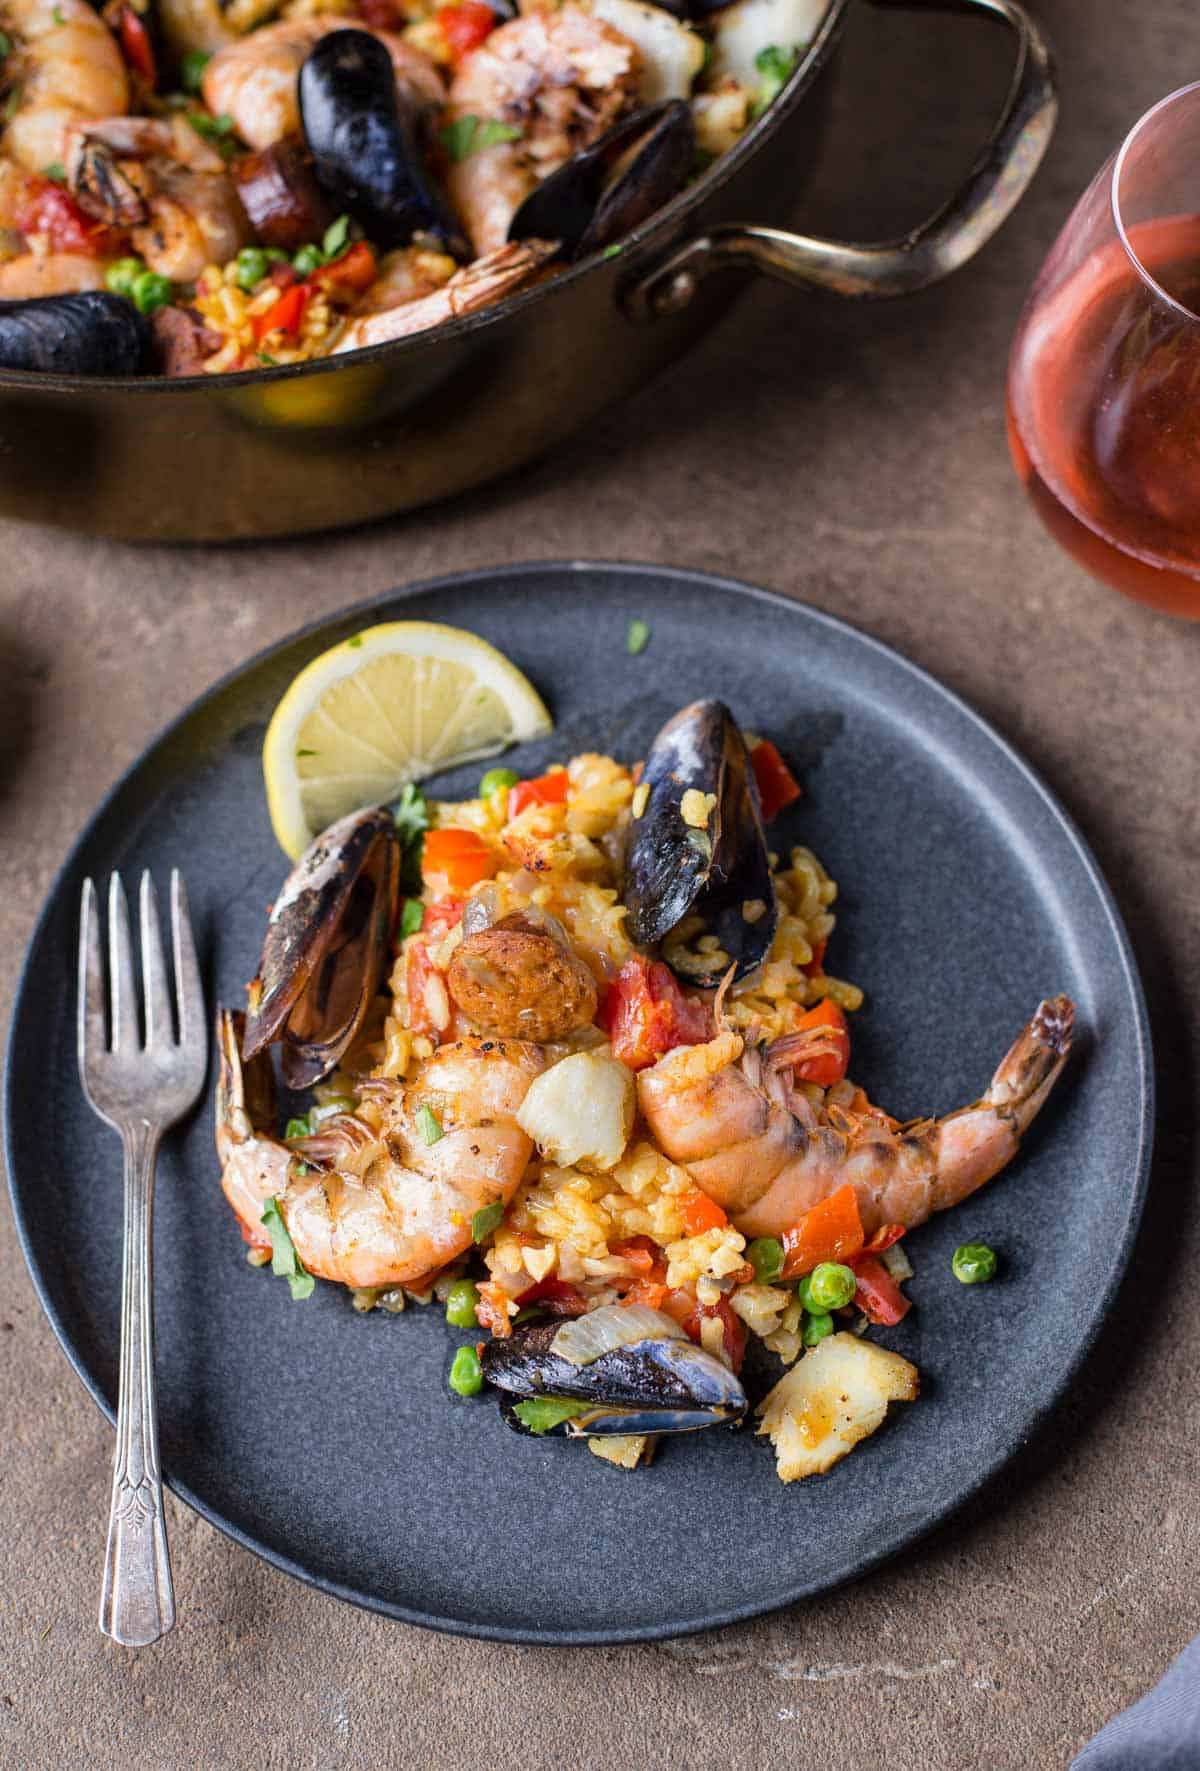 A grey plate with seafood paella and a glass of rosé wine next to it